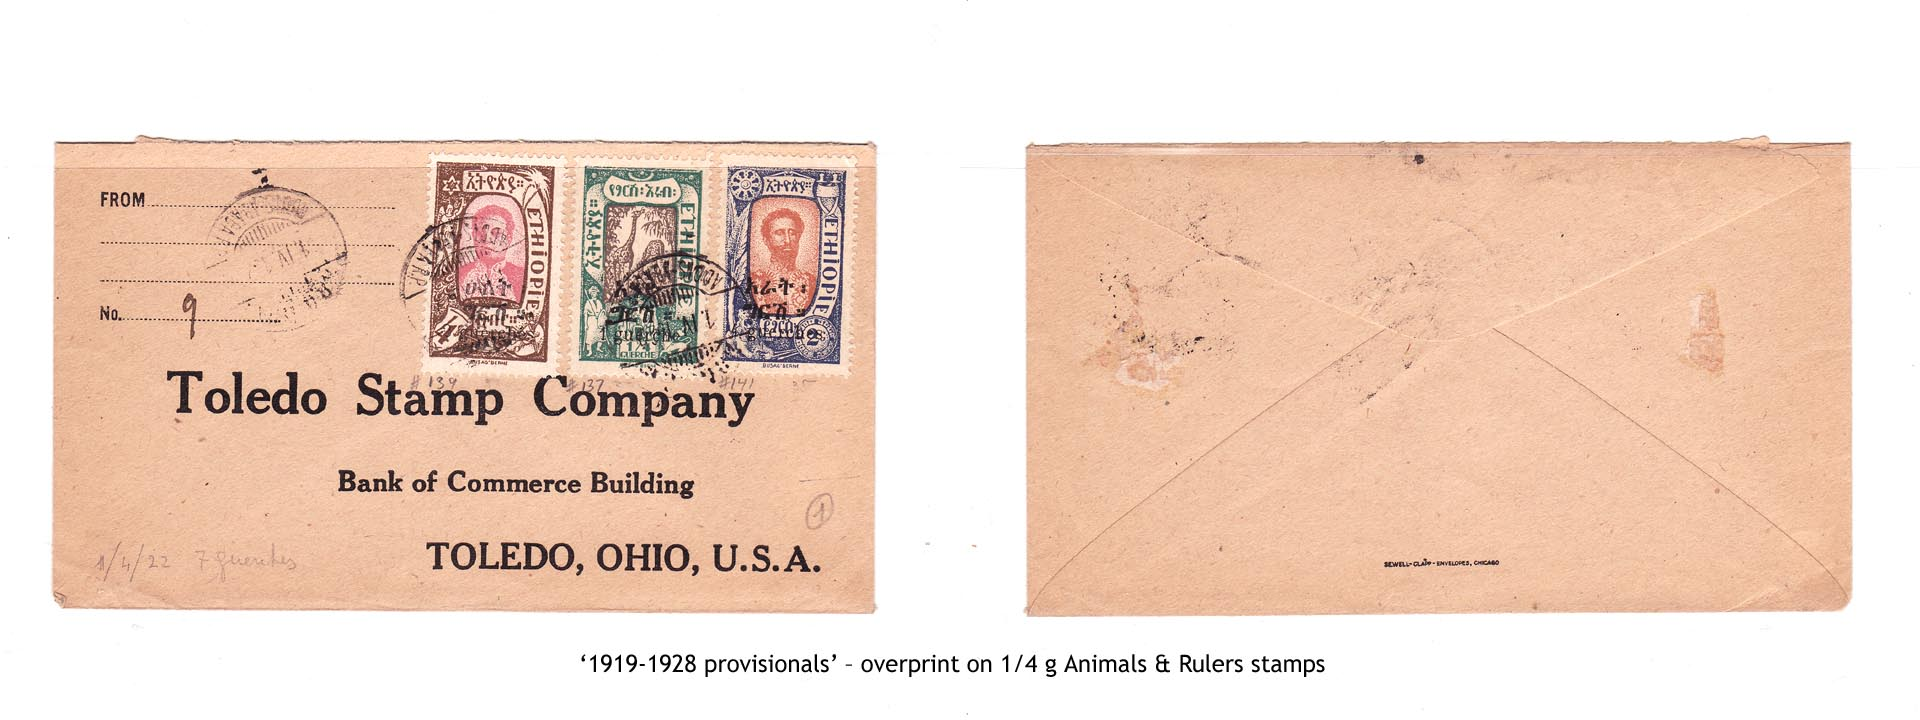 1919-1928 provisionals' – overprint on 1-4 g Animals & Rulers stamps